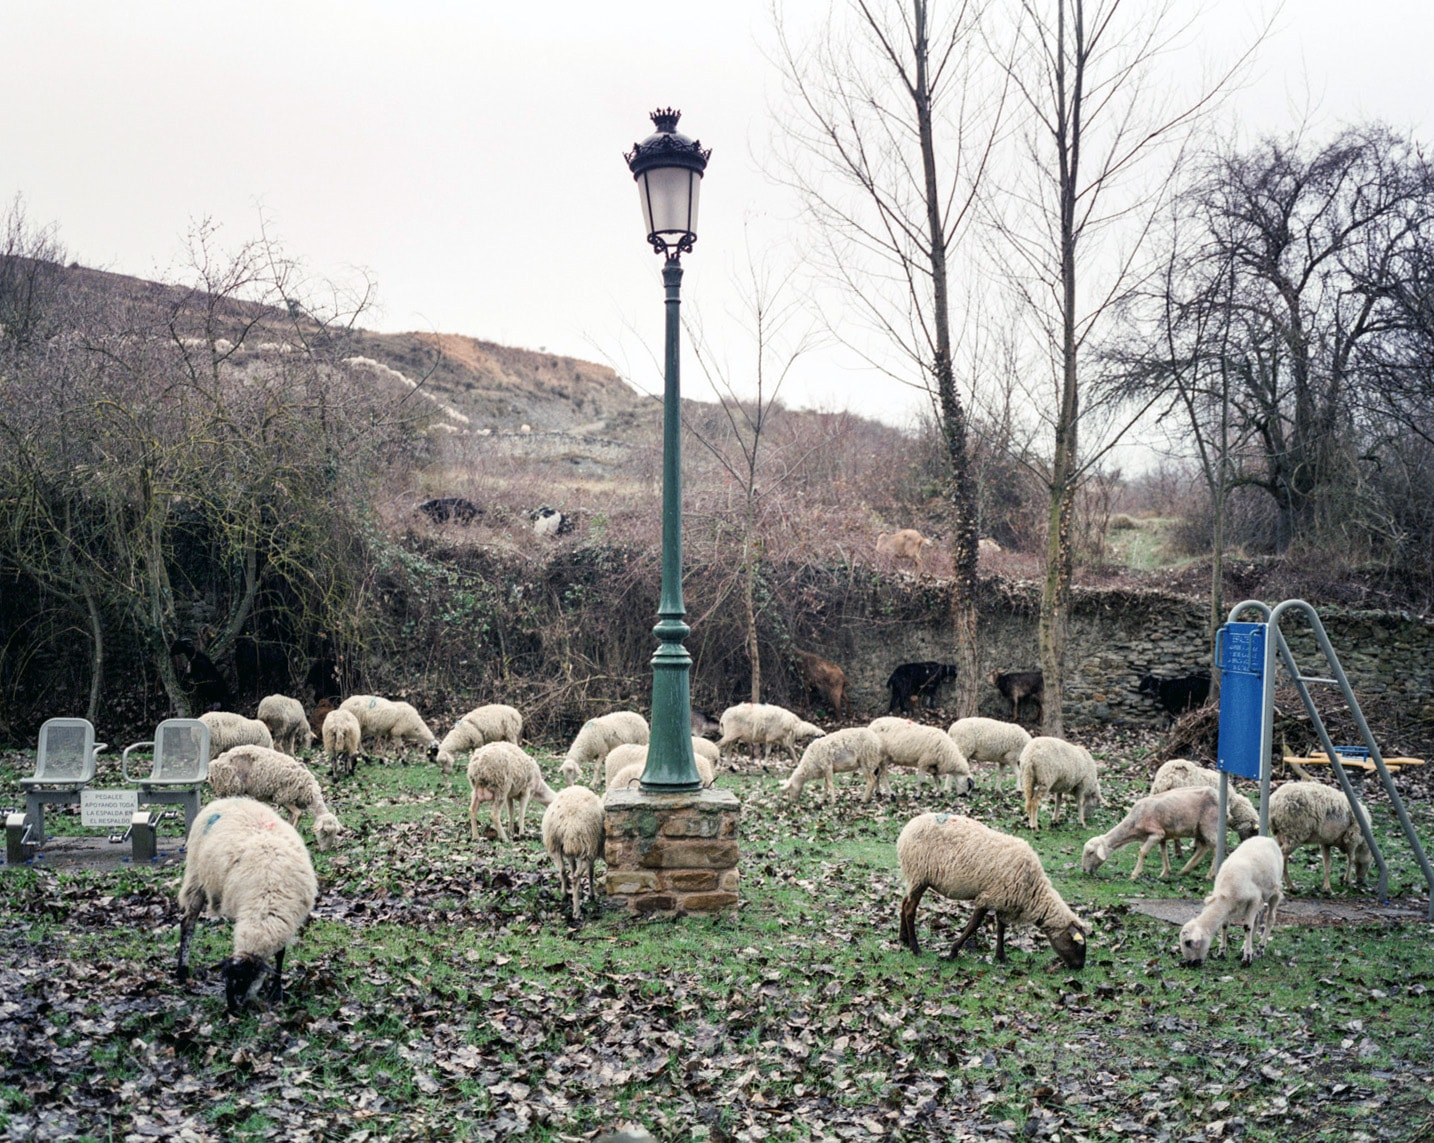 Sheep in Yanguas